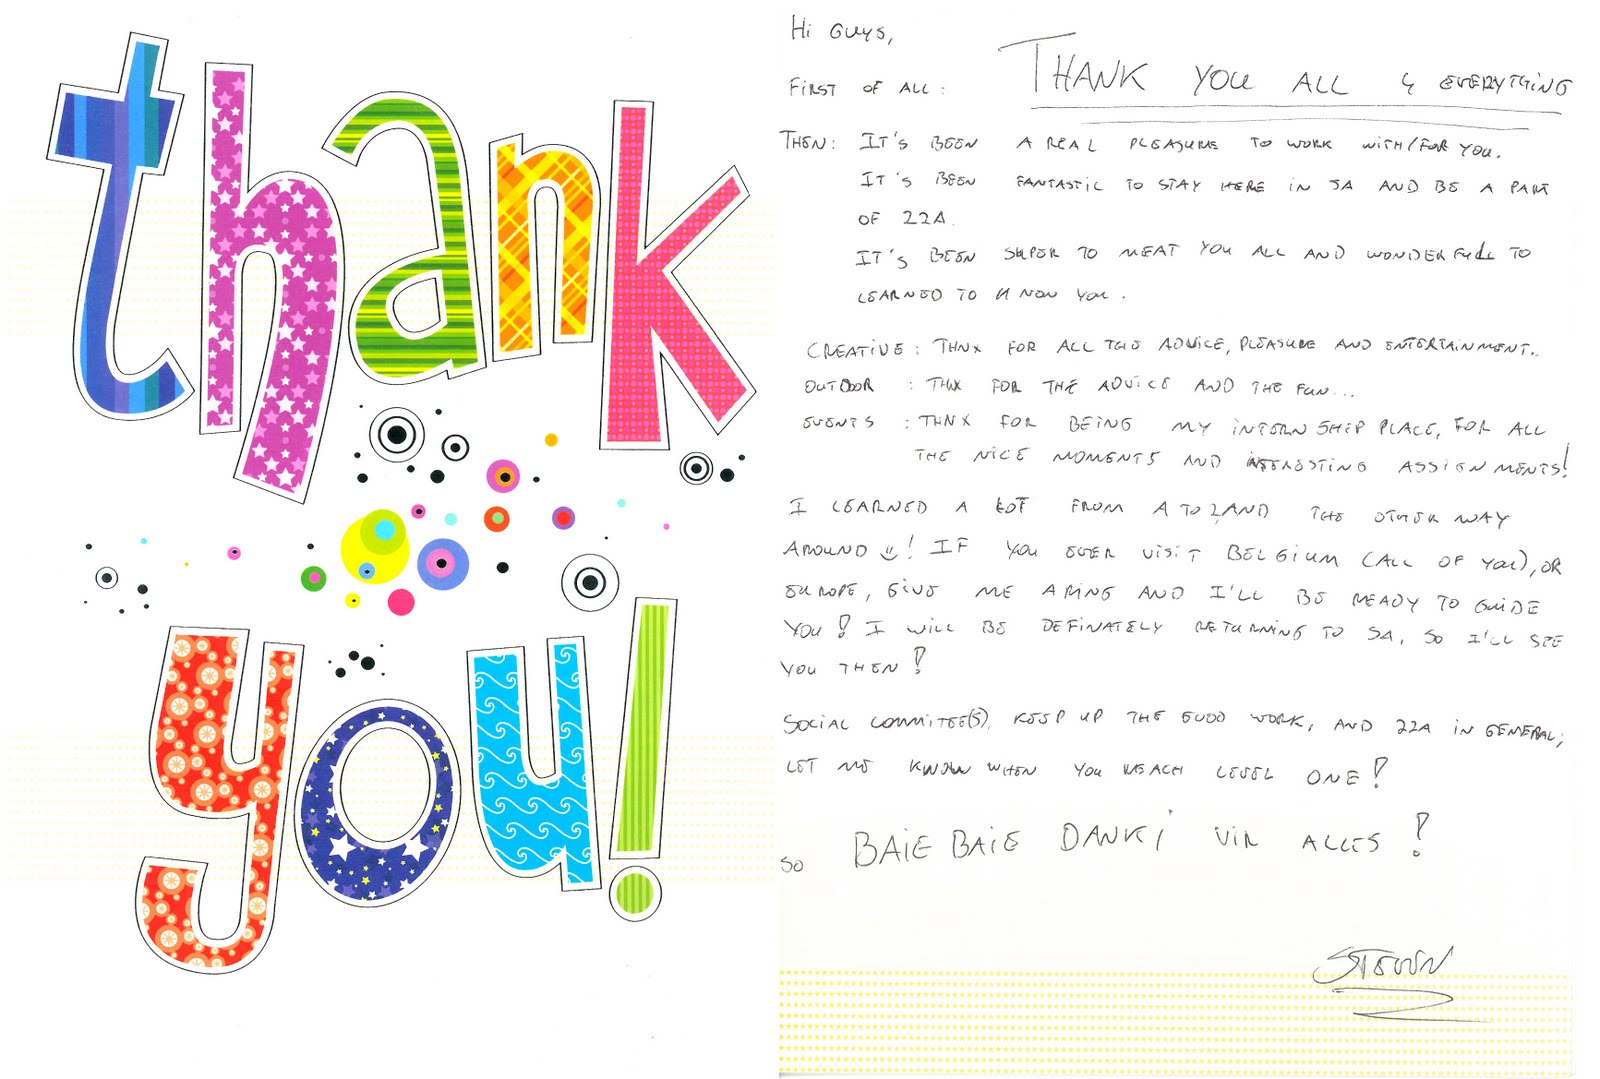 Thank You Letter Farewell To Colleagues Images Letter Format